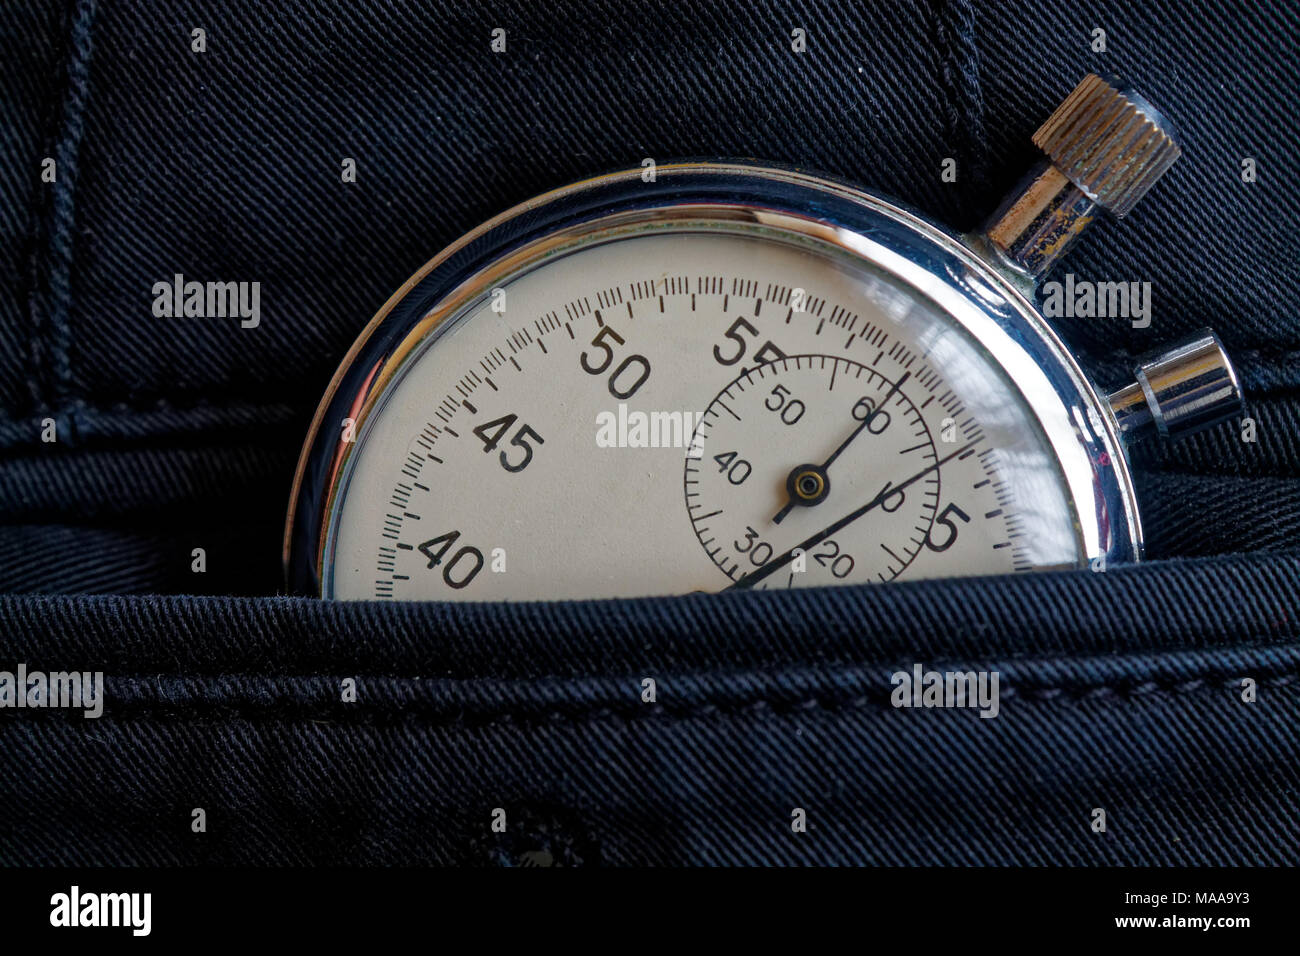 Vintage antiques Stopwatch, in new back jeans pocket, value measure time, old clock arrow minute, second accuracy timer record - Stock Image